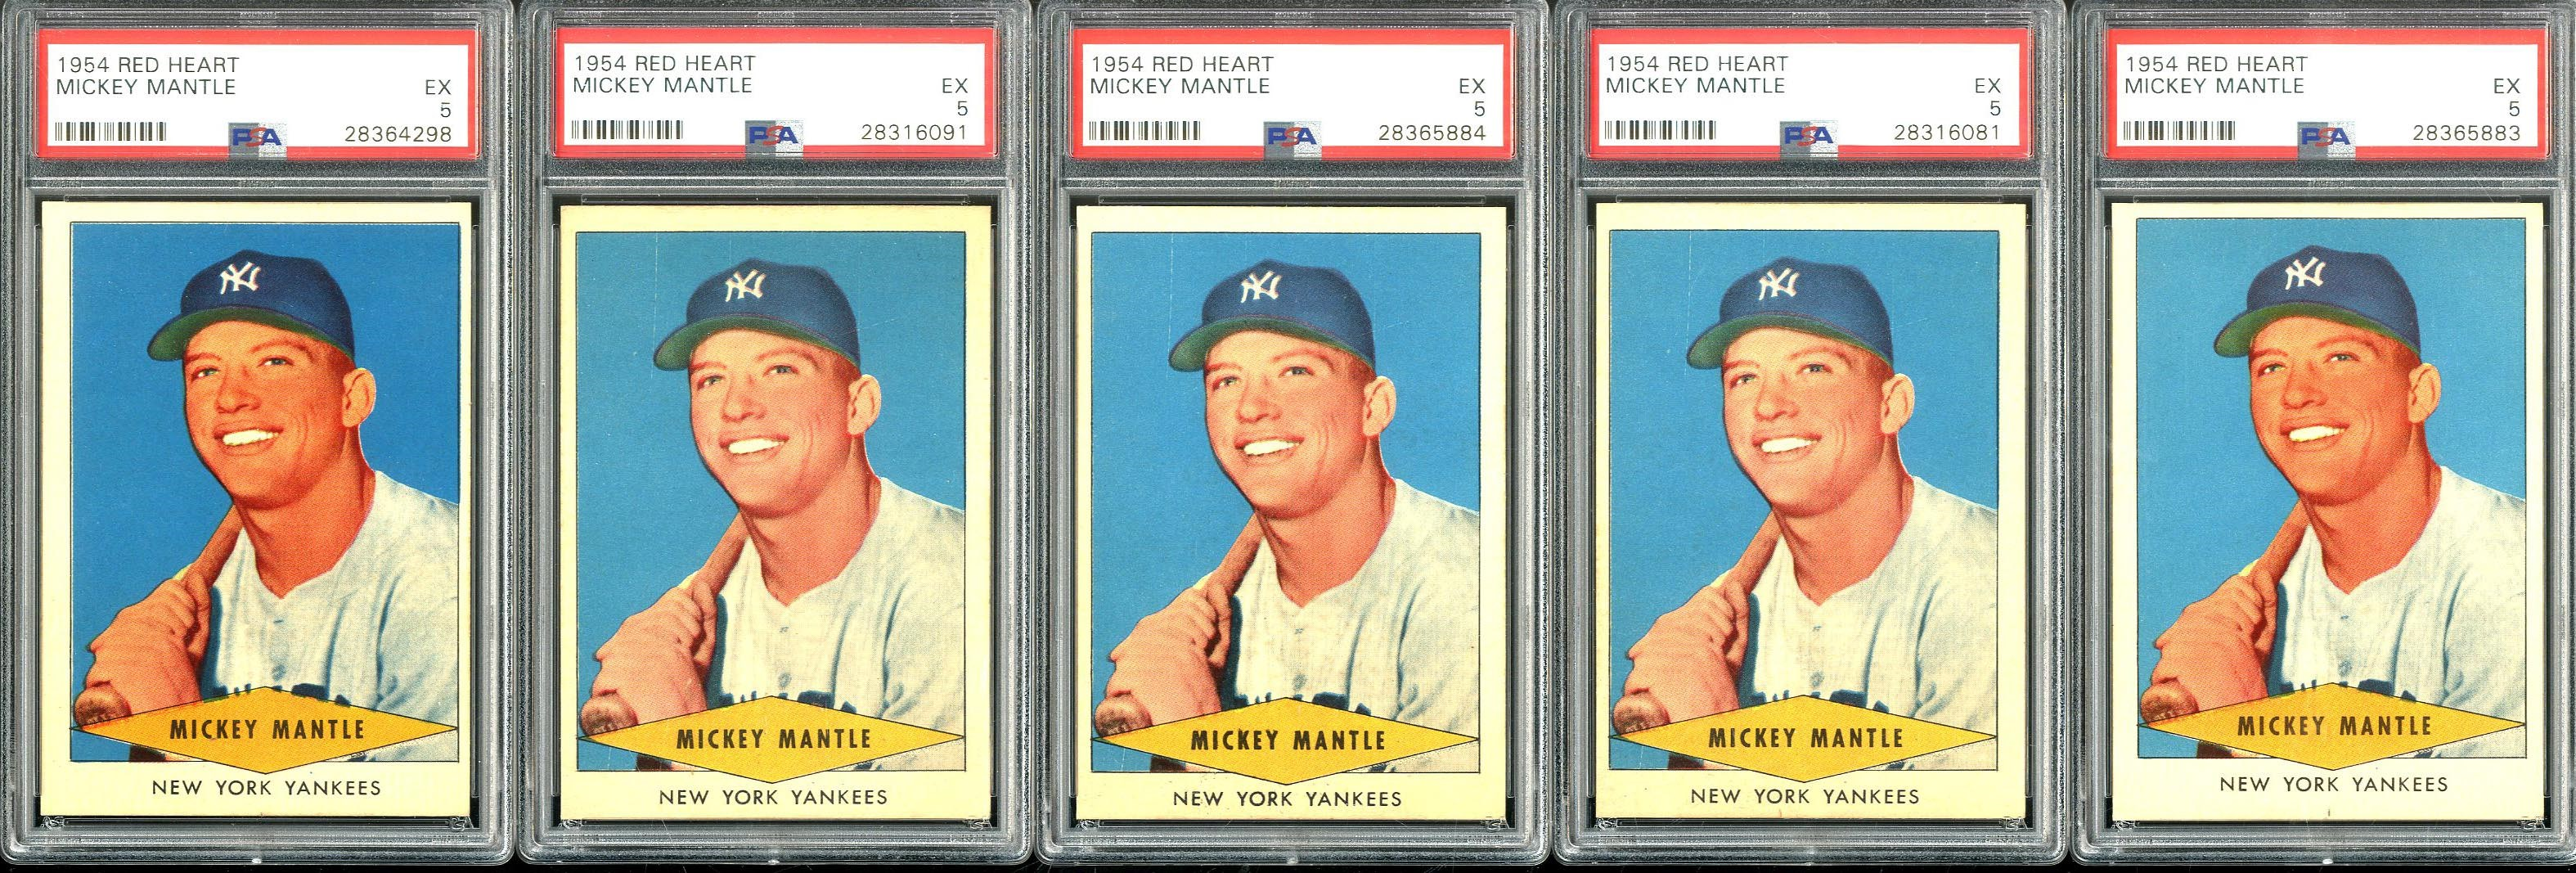 1954 Red Heart Mickey Mantle PSA Graded Lot (5)